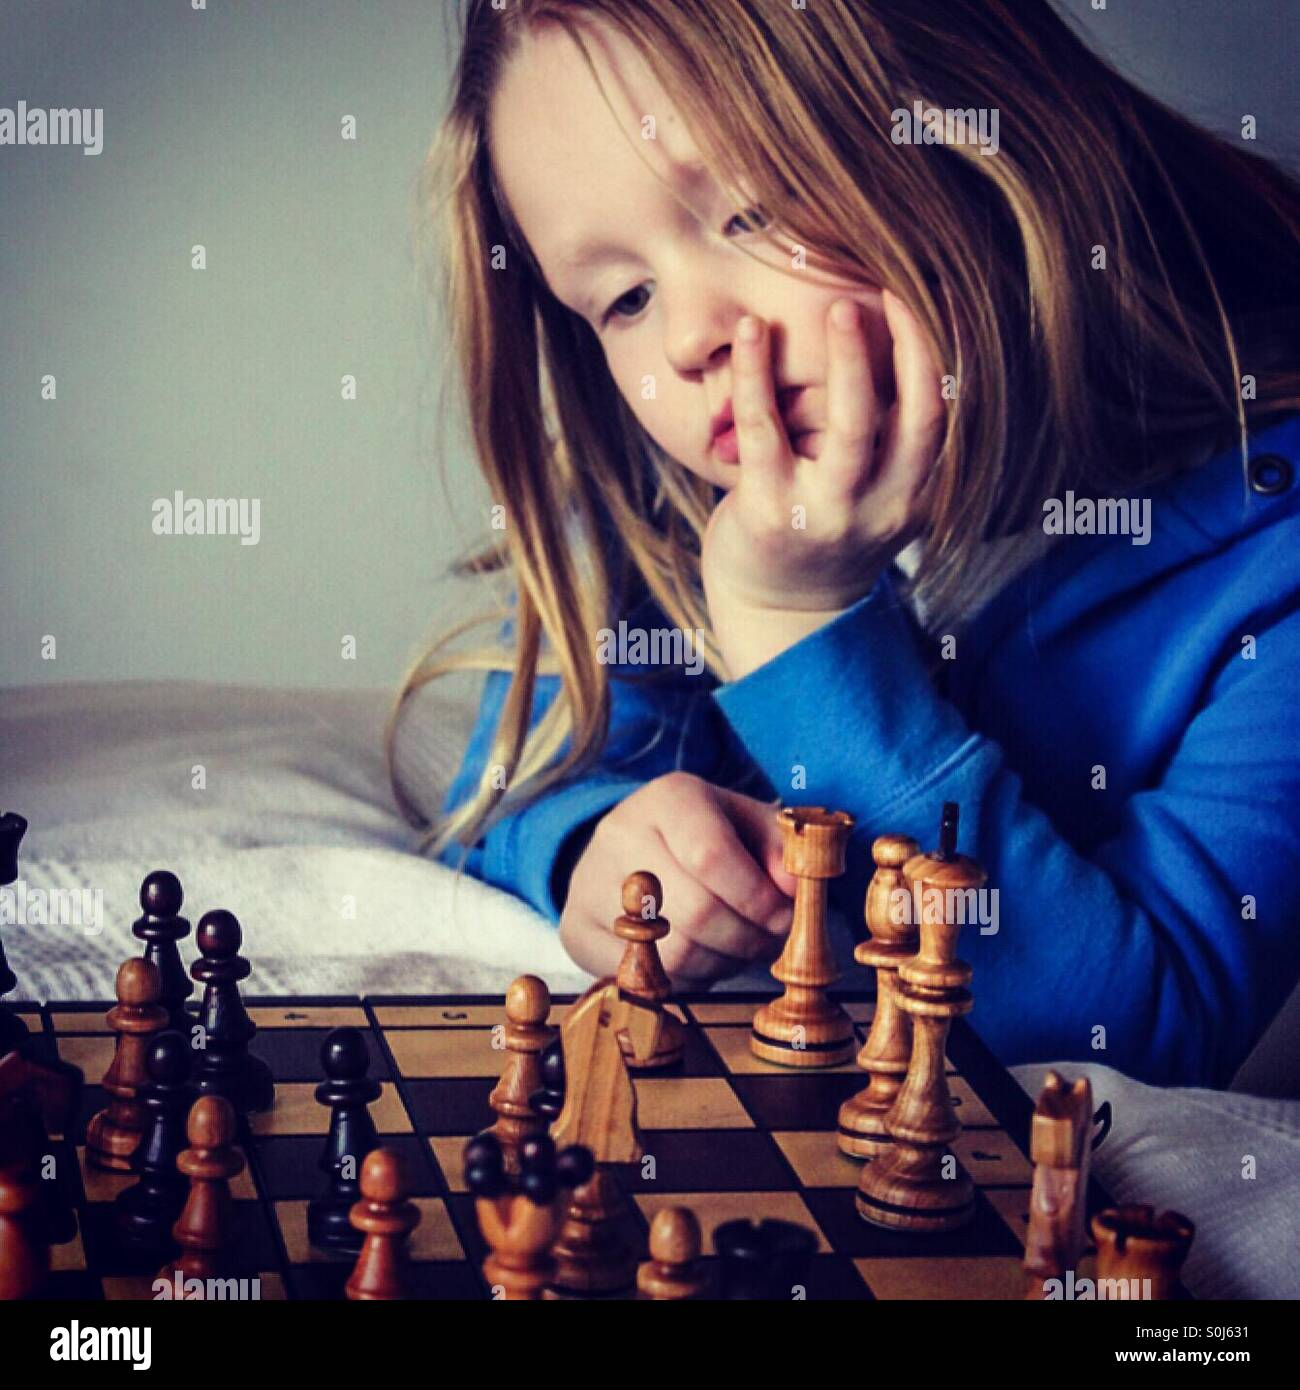 Girl playing chess - Stock Image